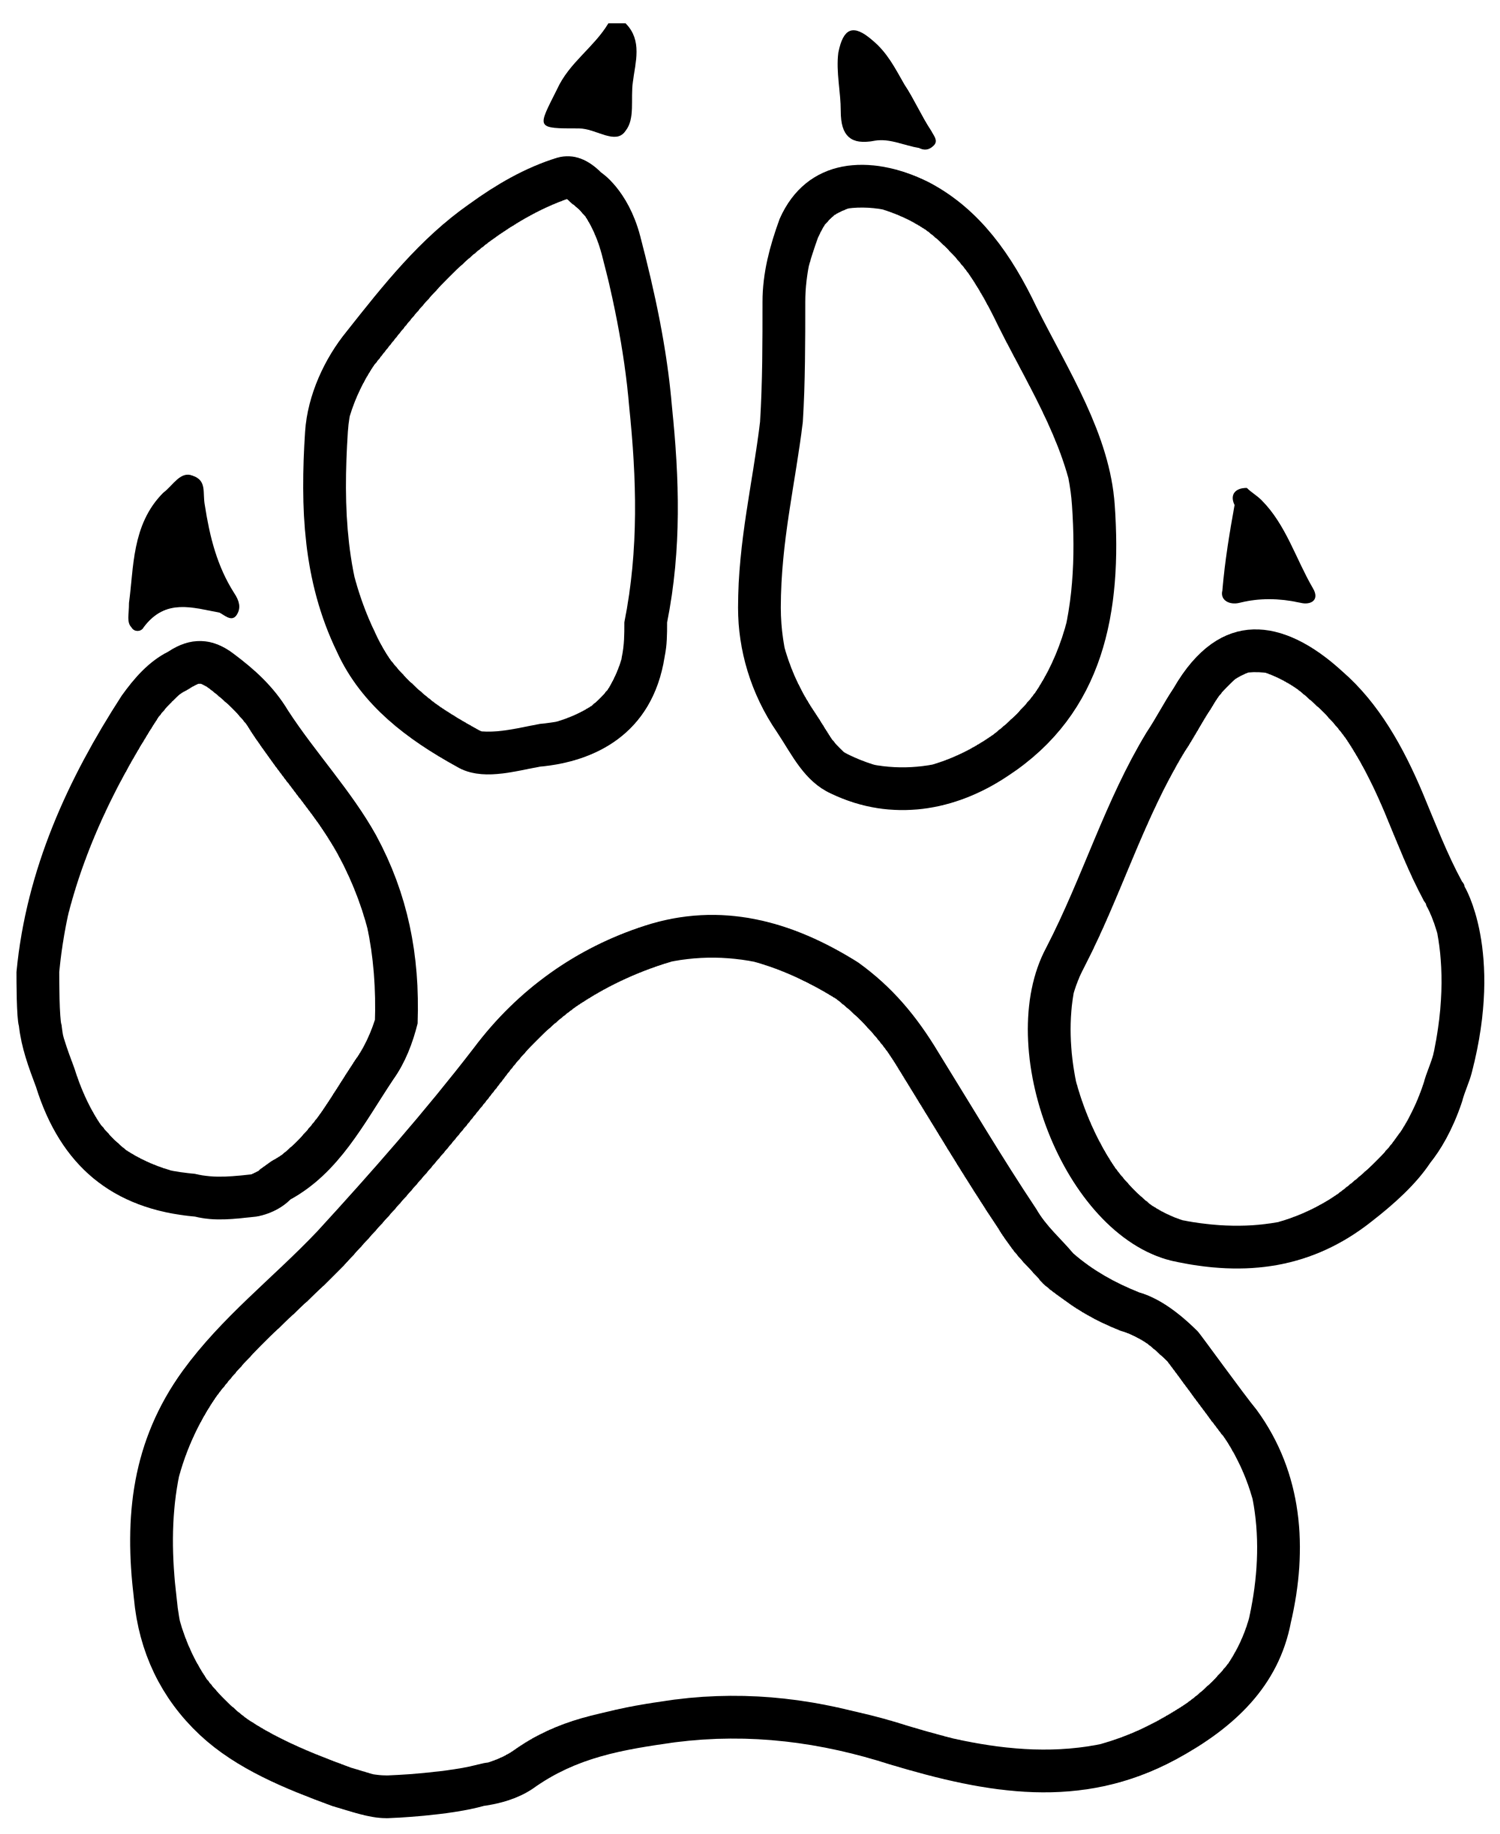 graphic of a little paw print